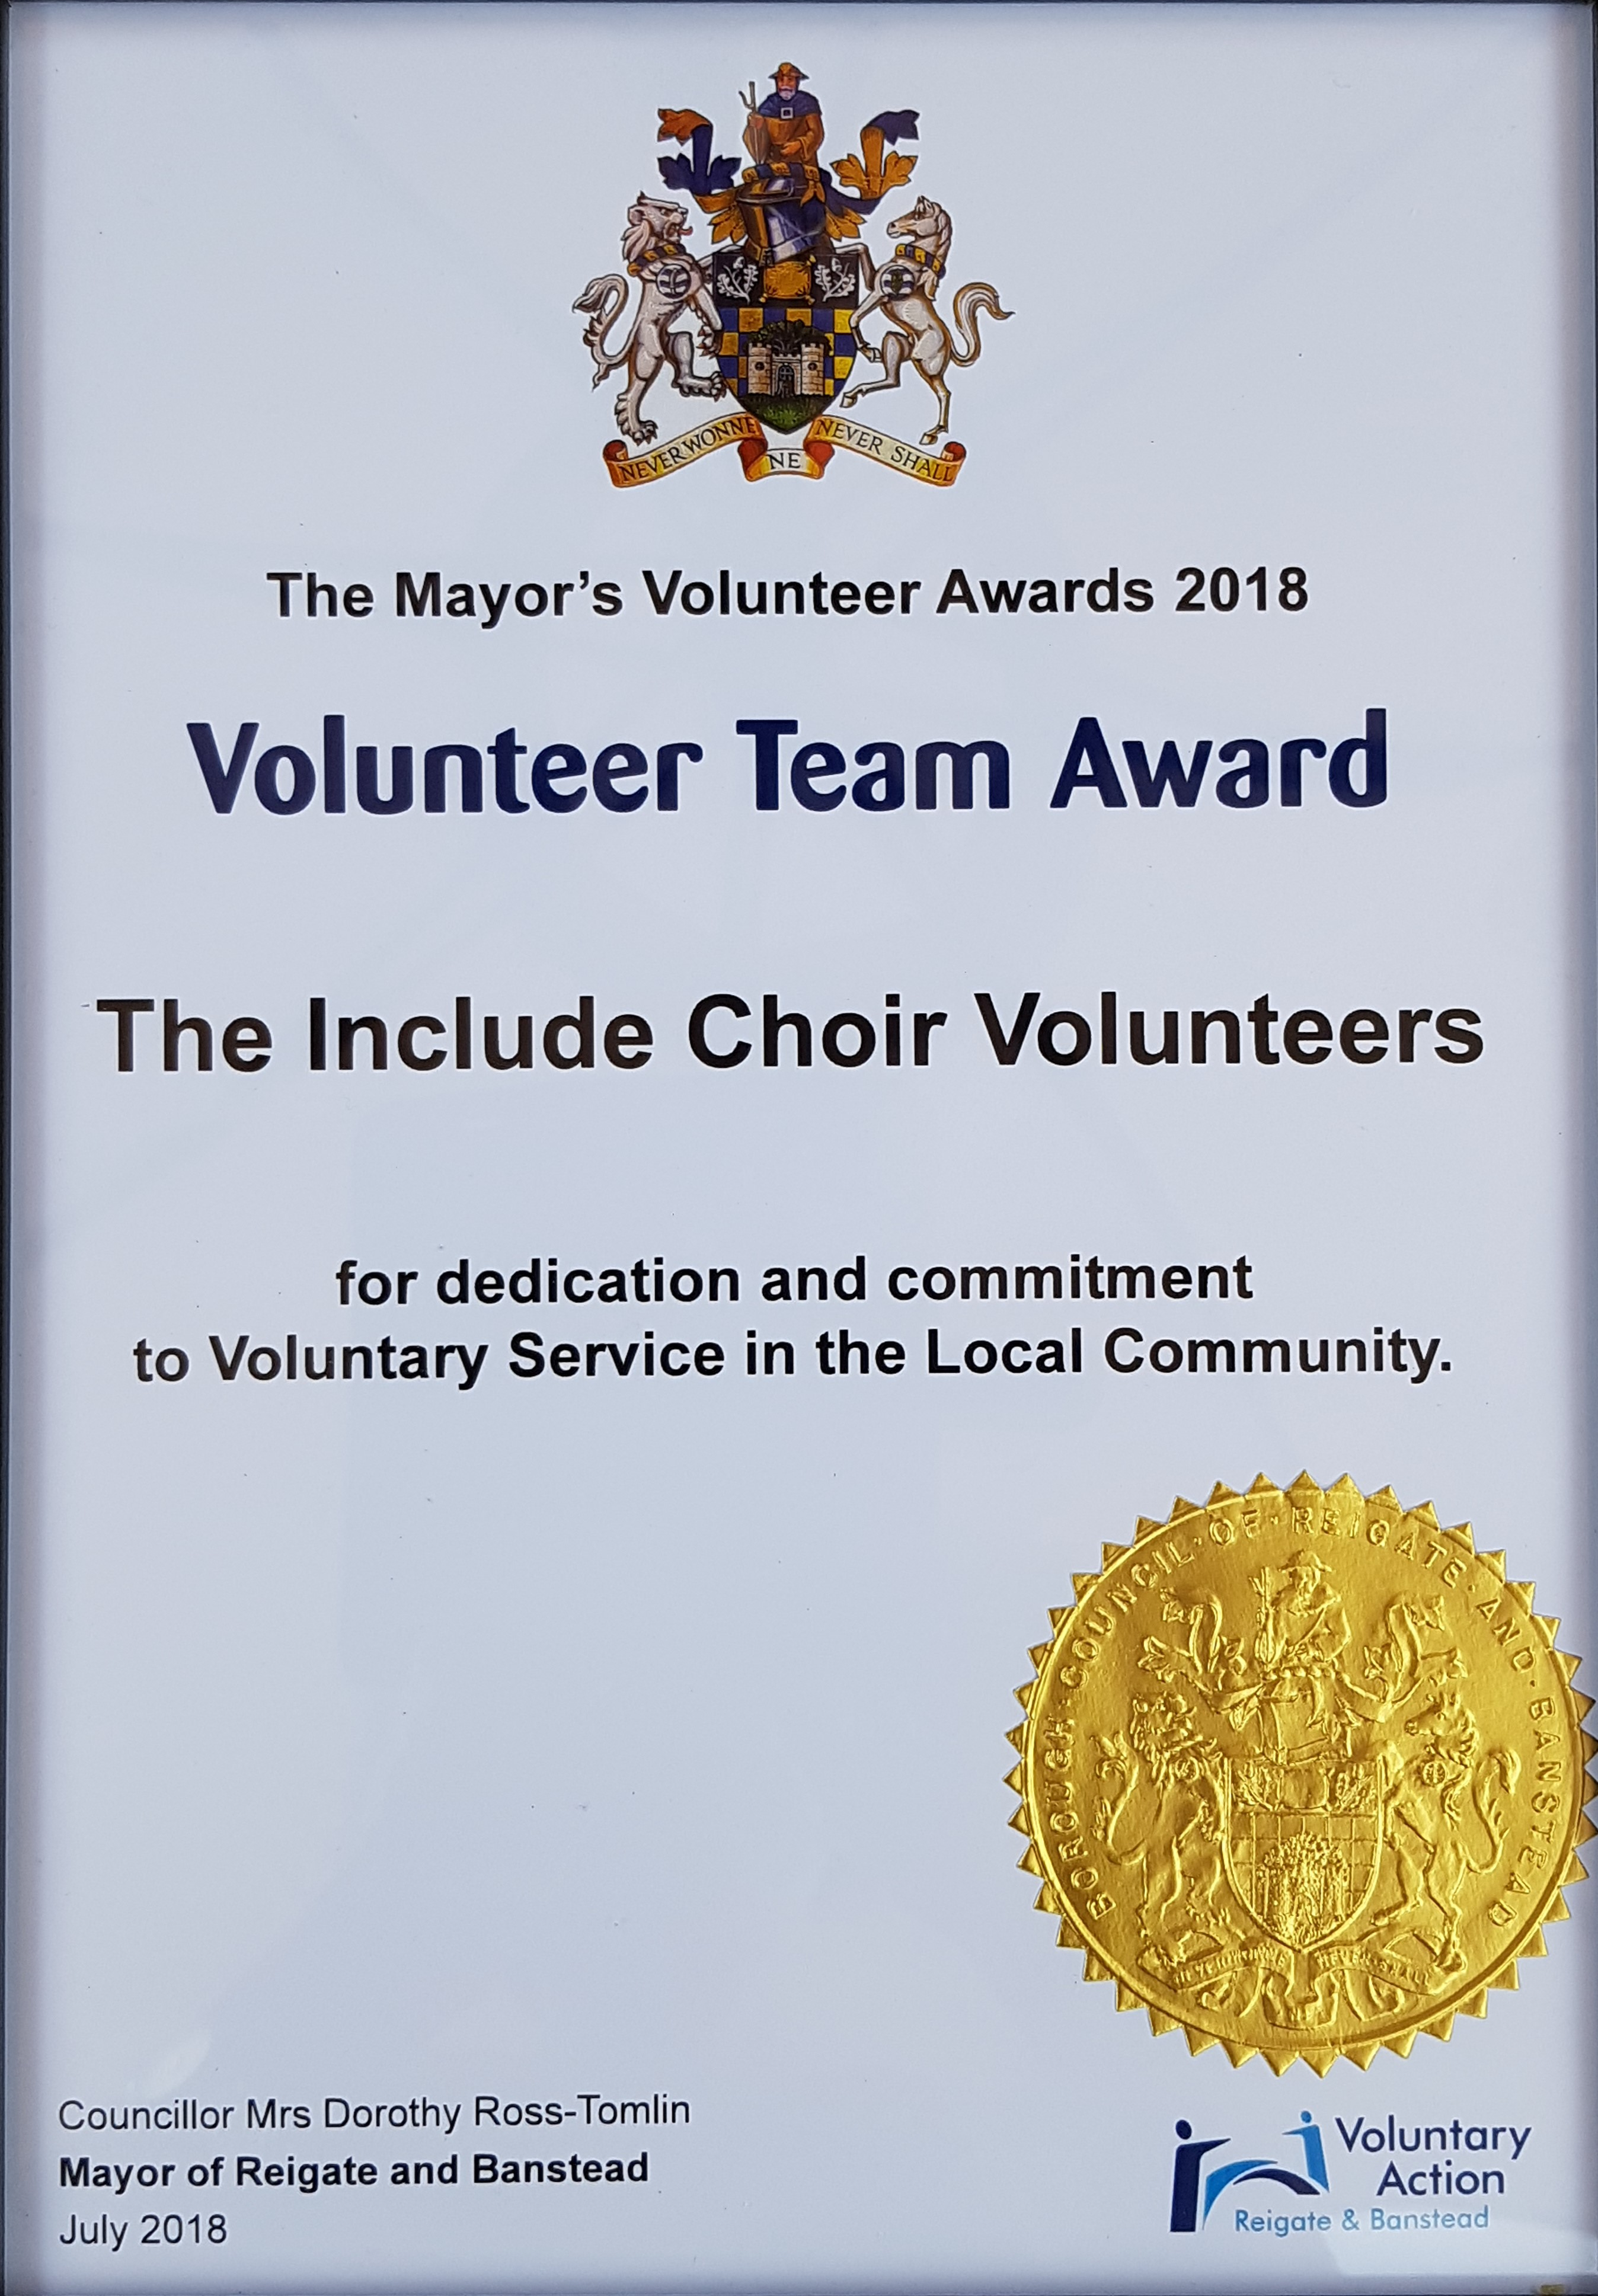 Reigate and Banstead Volunteering Award